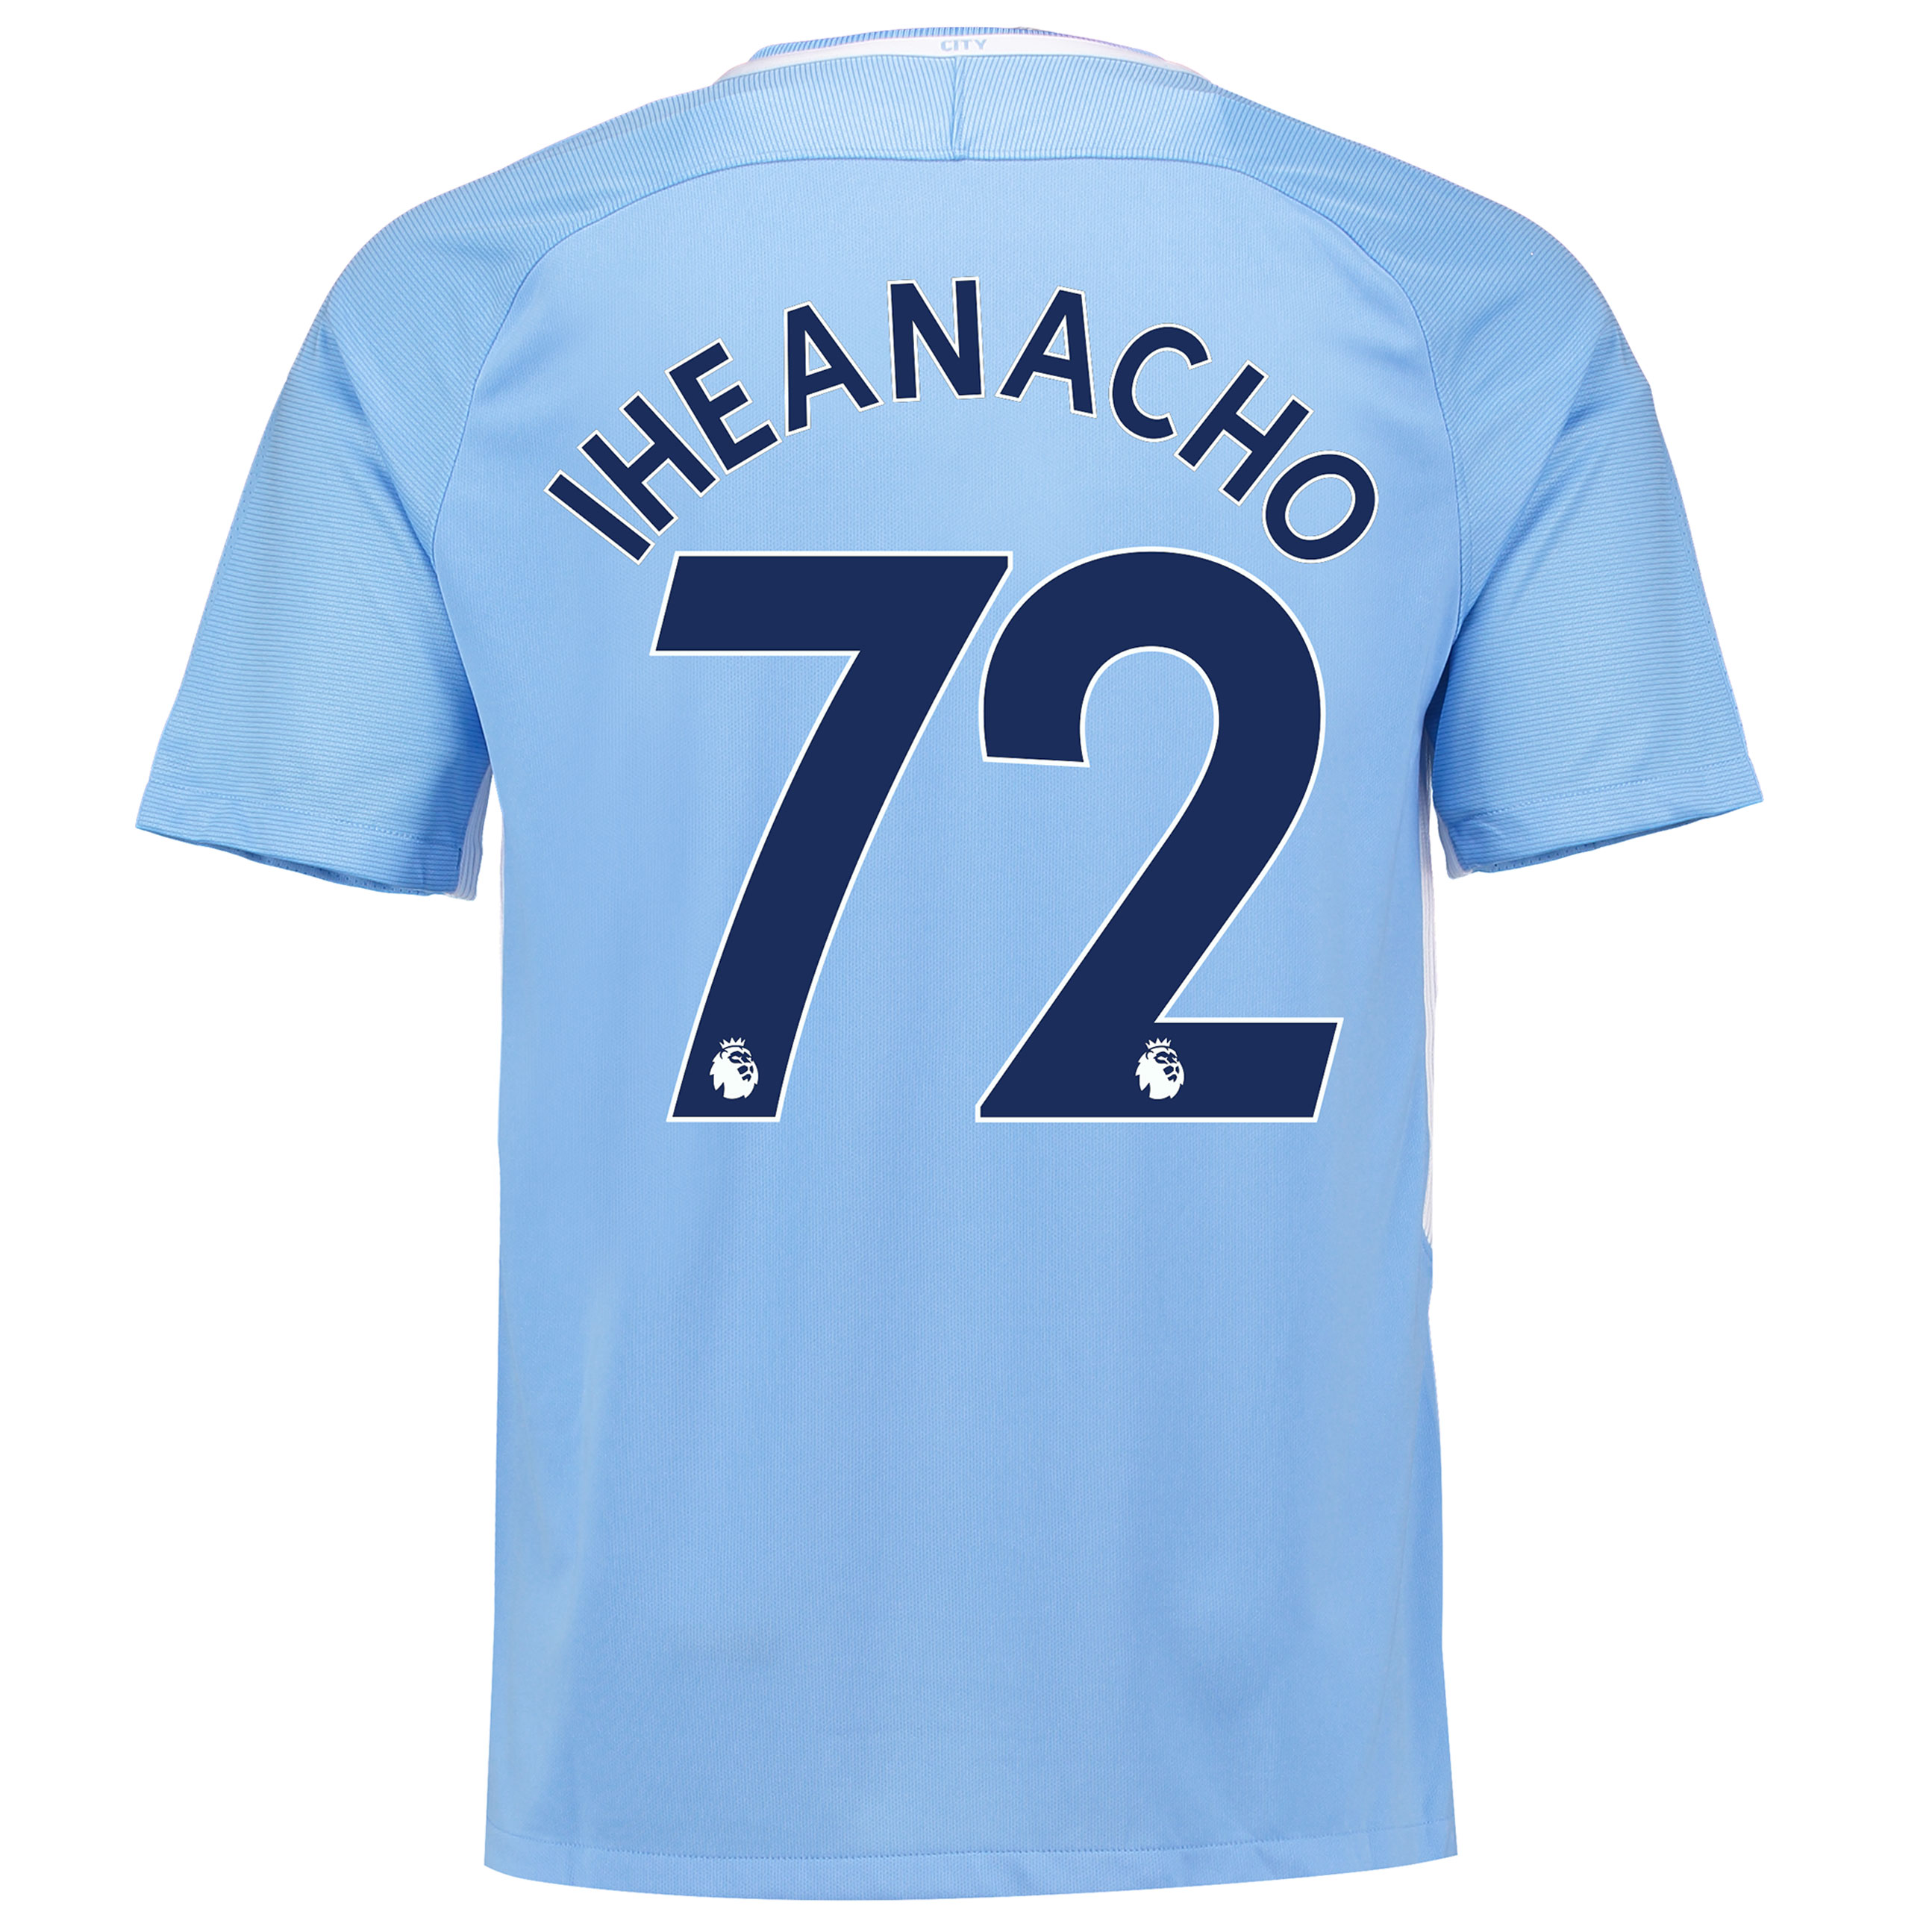 Manchester City Home Stadium Shirt 2017-18 with Iheanacho 72 printing